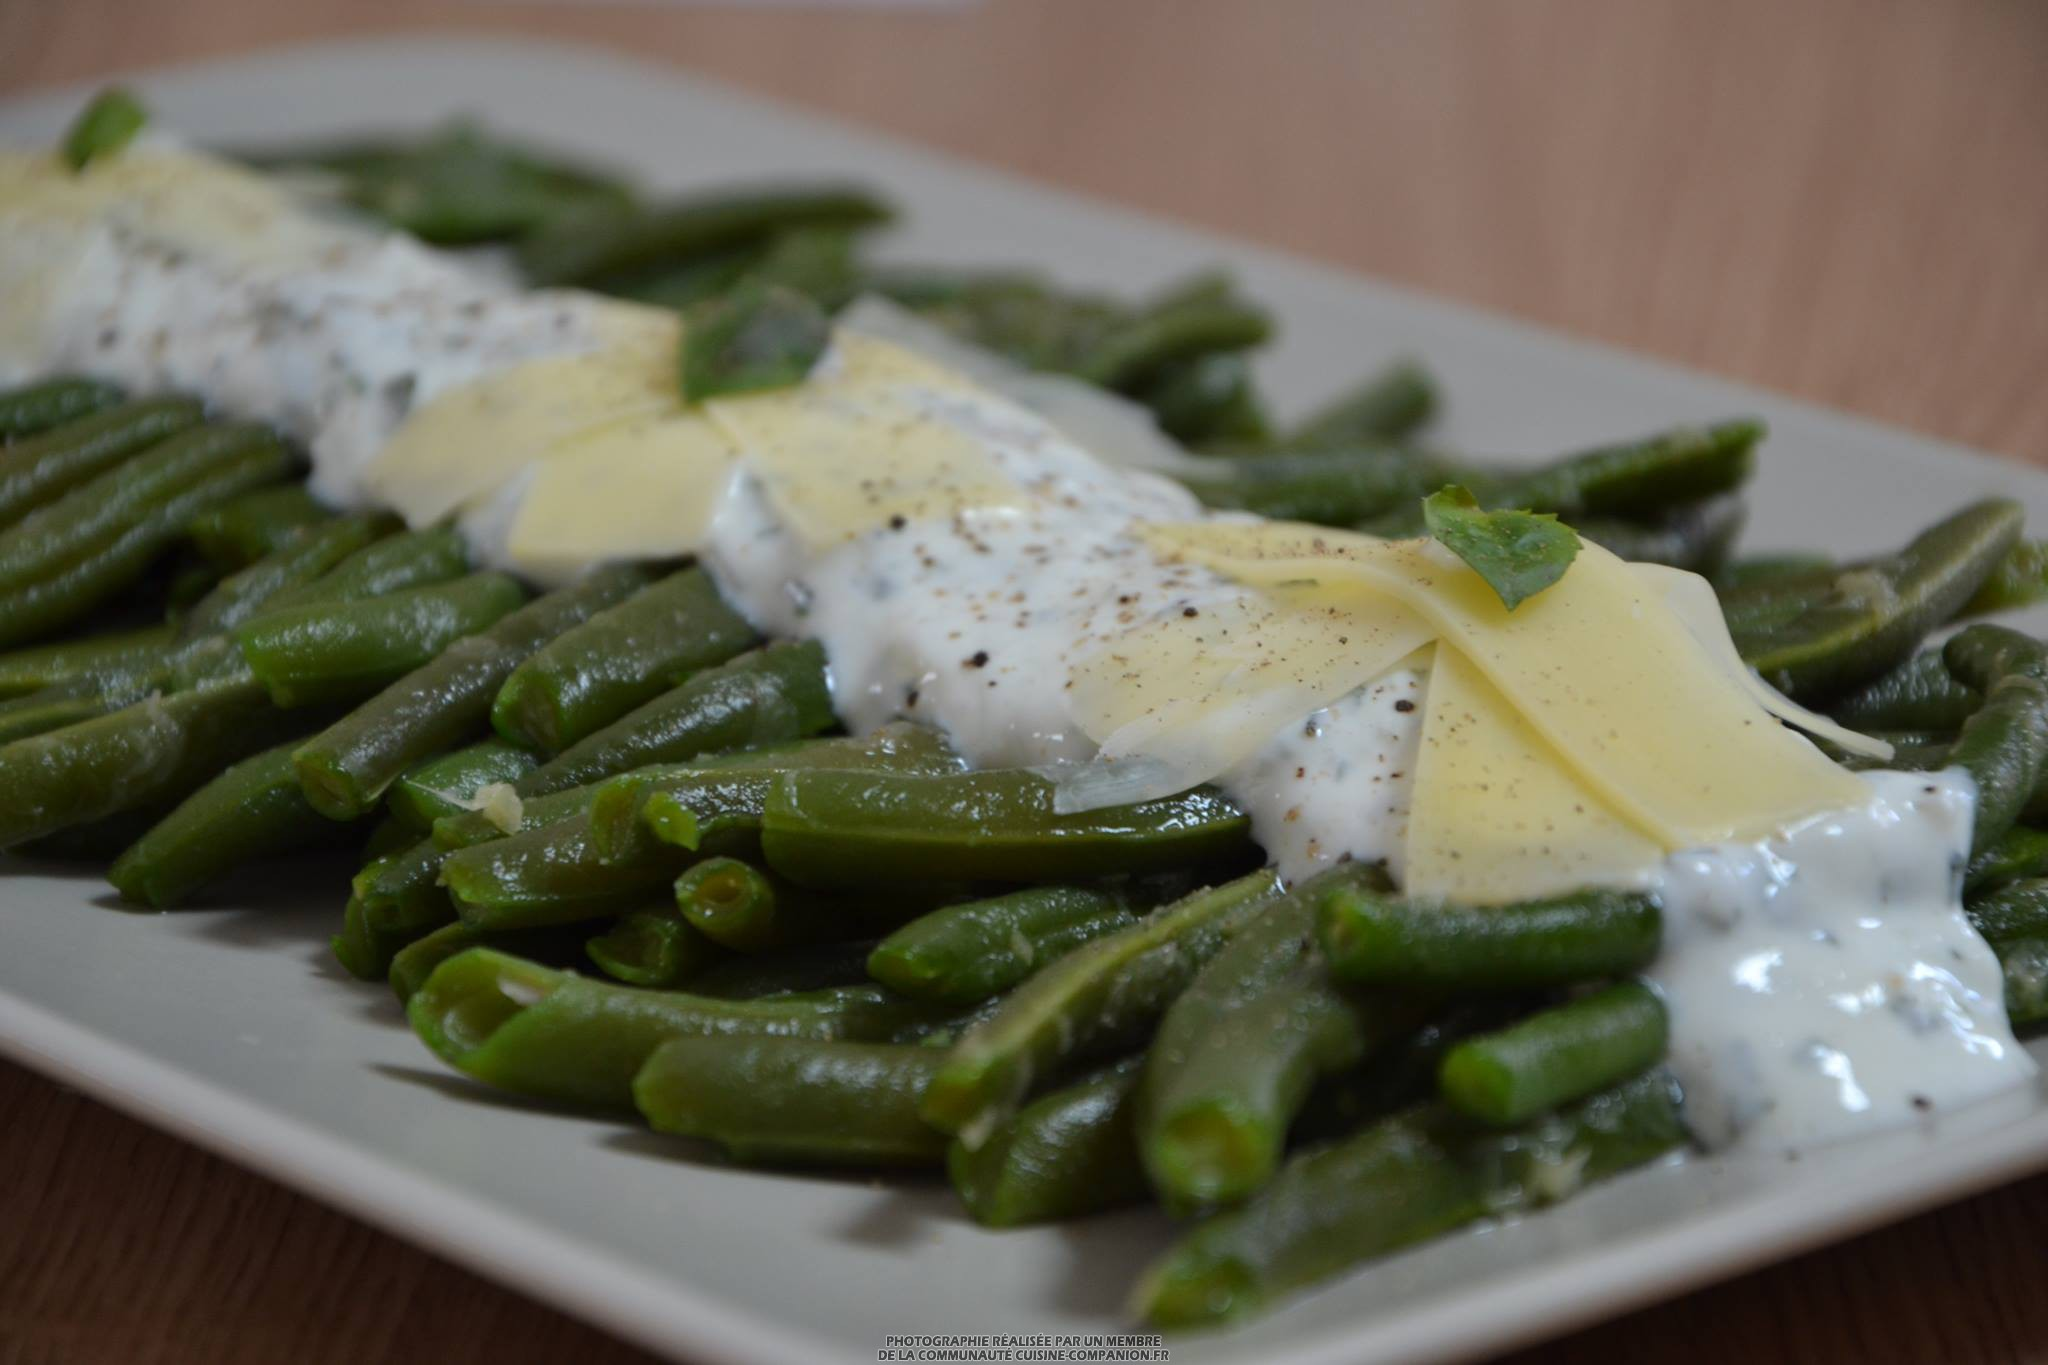 salade de haricots verts et sa sauce au fromage blanc citron basilic ma vab recette cuisine. Black Bedroom Furniture Sets. Home Design Ideas